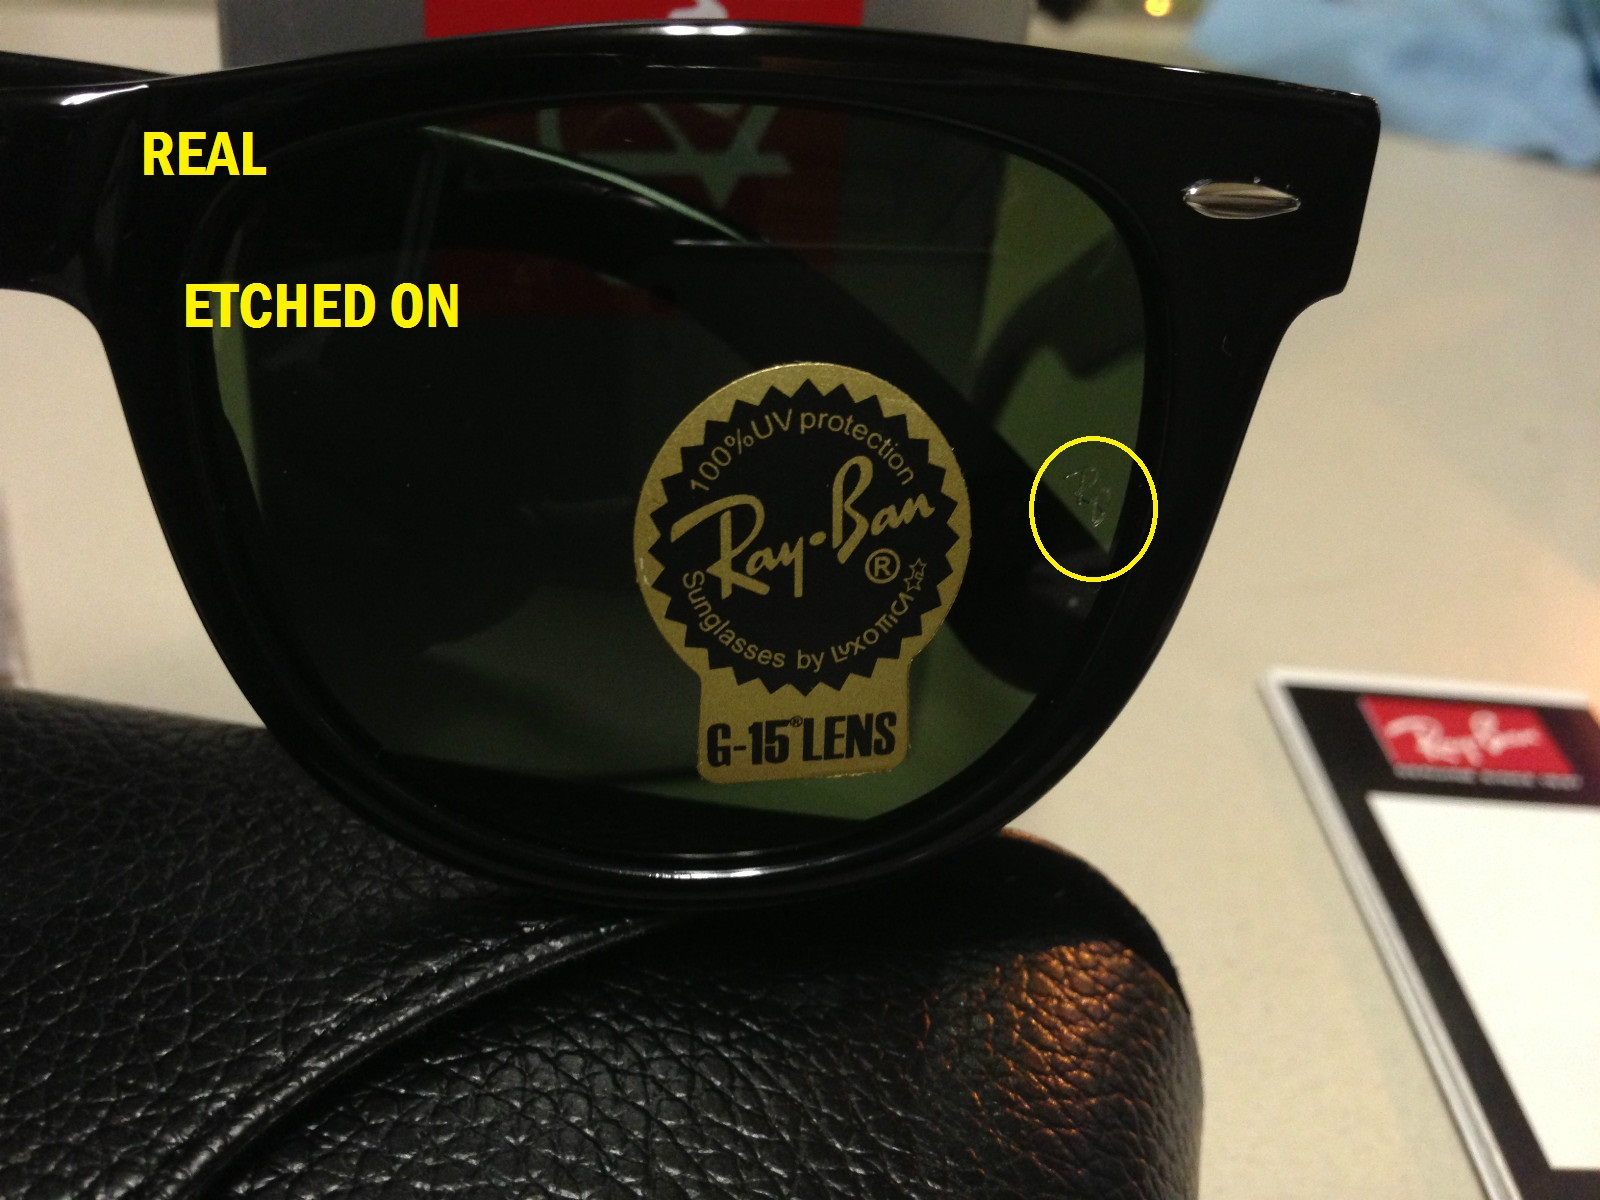 authentic ray bans cheap  fake ray ban sunglasses - The eBay Community